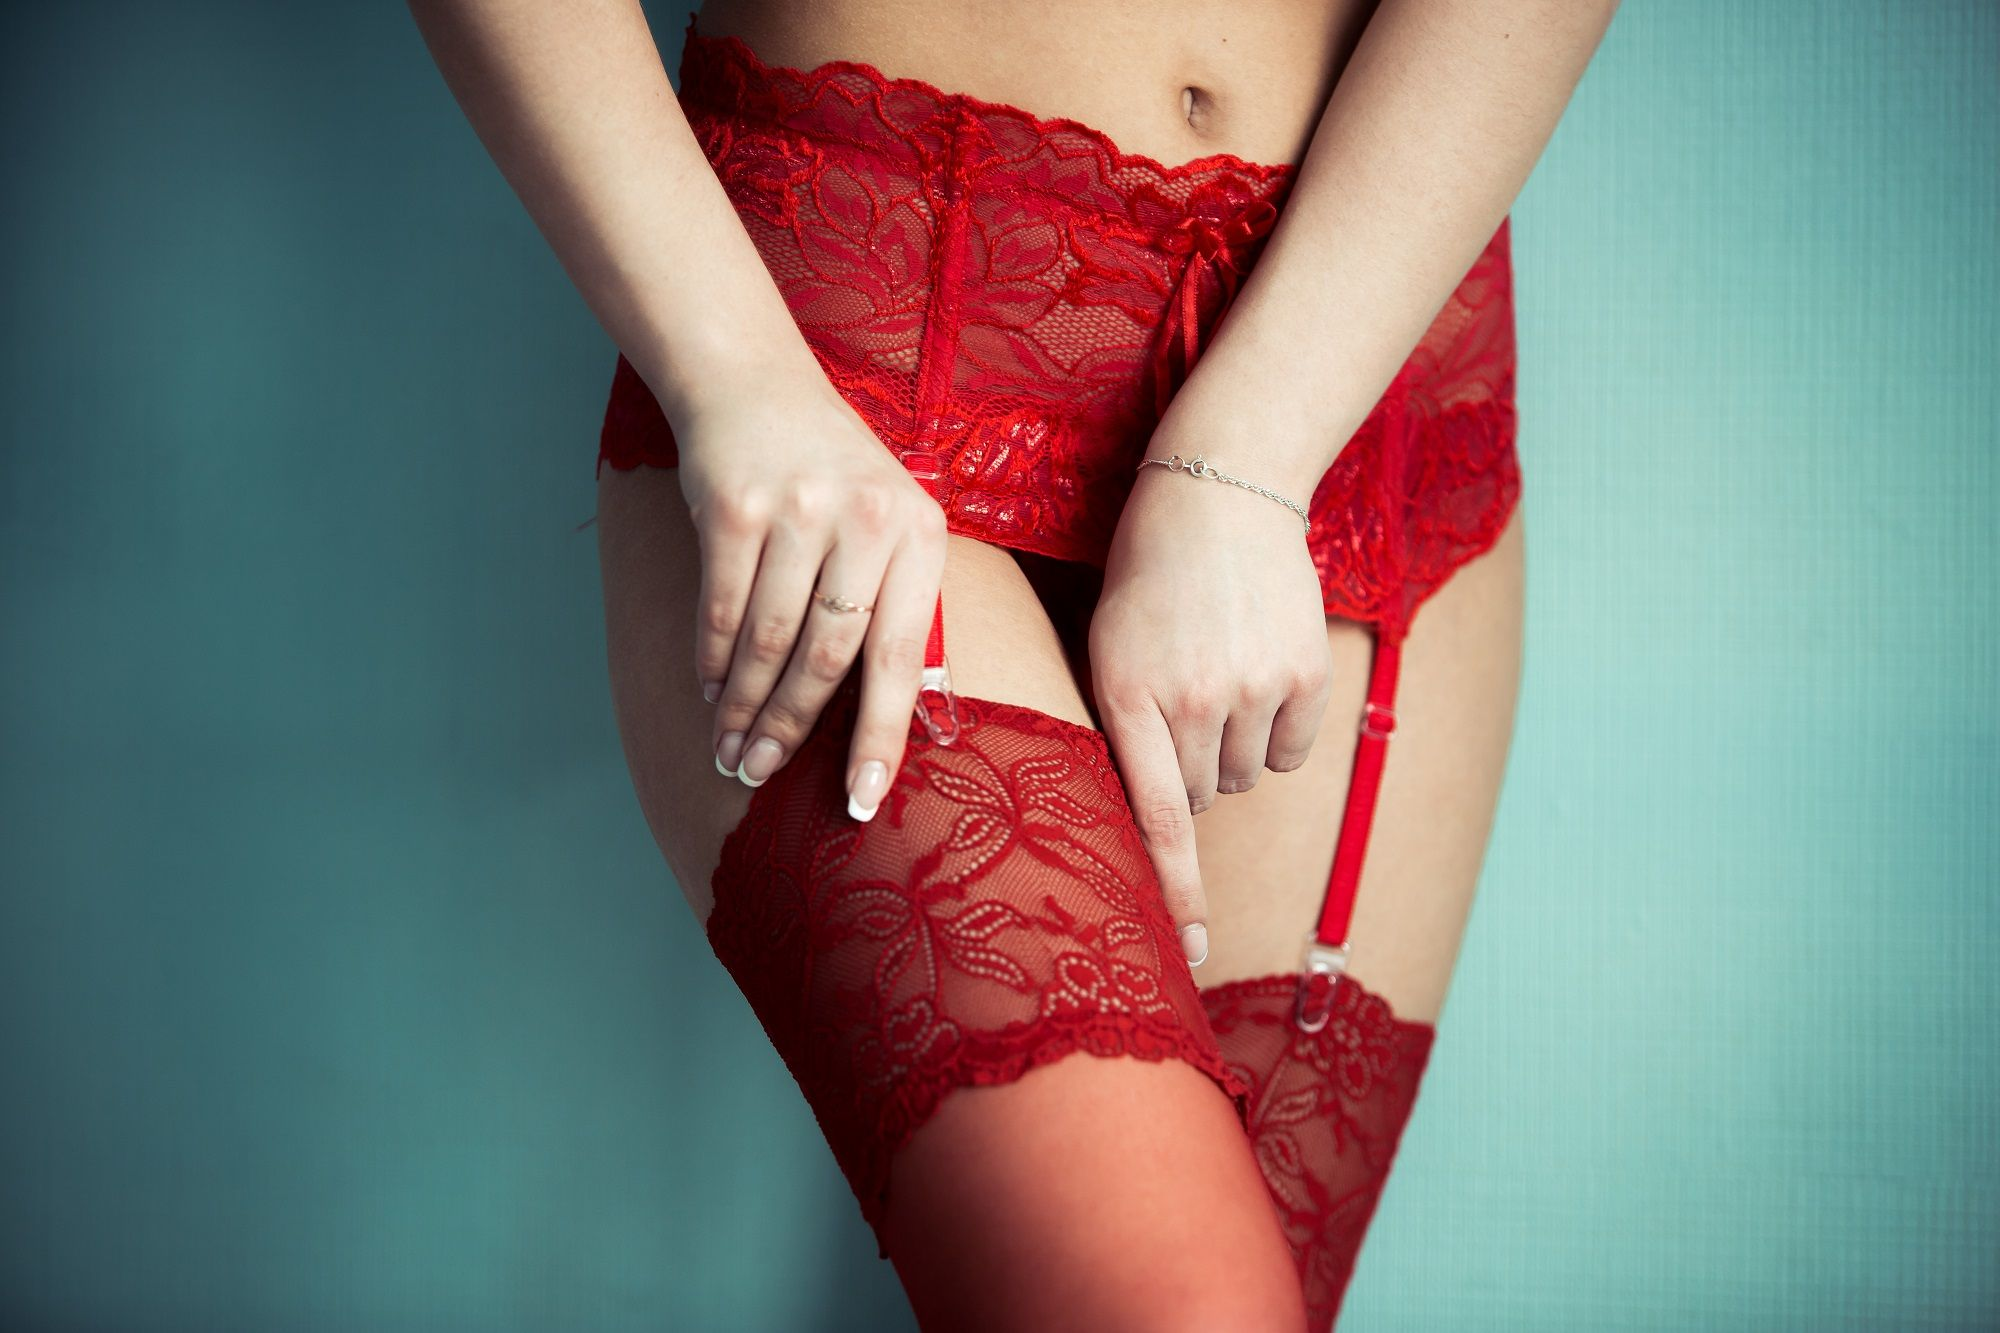 20 Interesting Things You Didn't Know About Lingerie